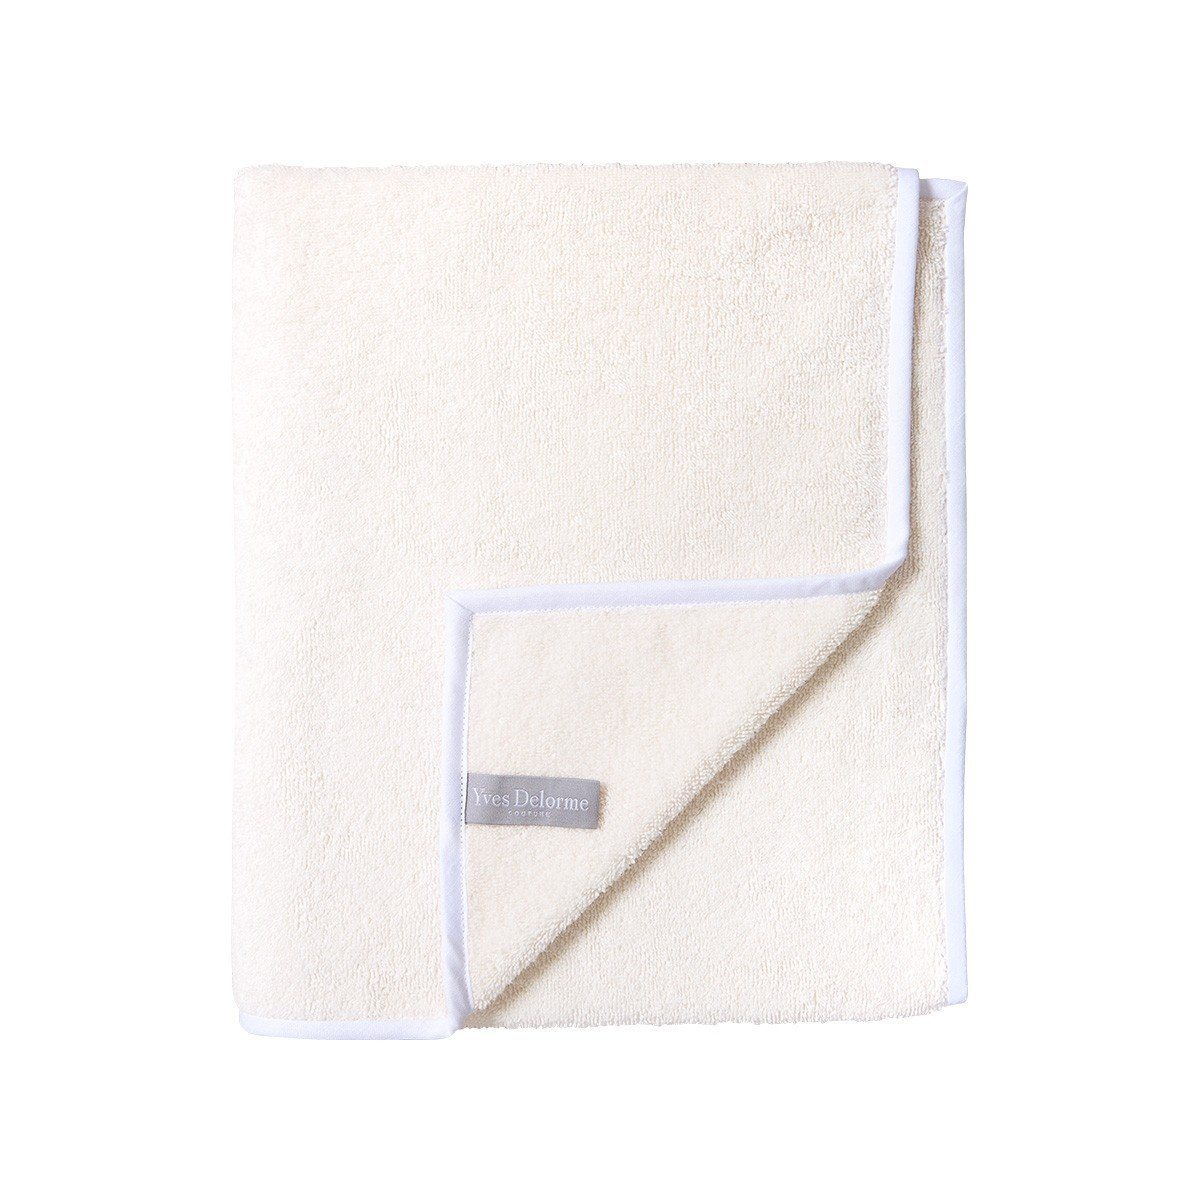 Adagio Perle Bath Collection by Yves Delorme | Fig Linens - Ivory Bath Linen - bath towel